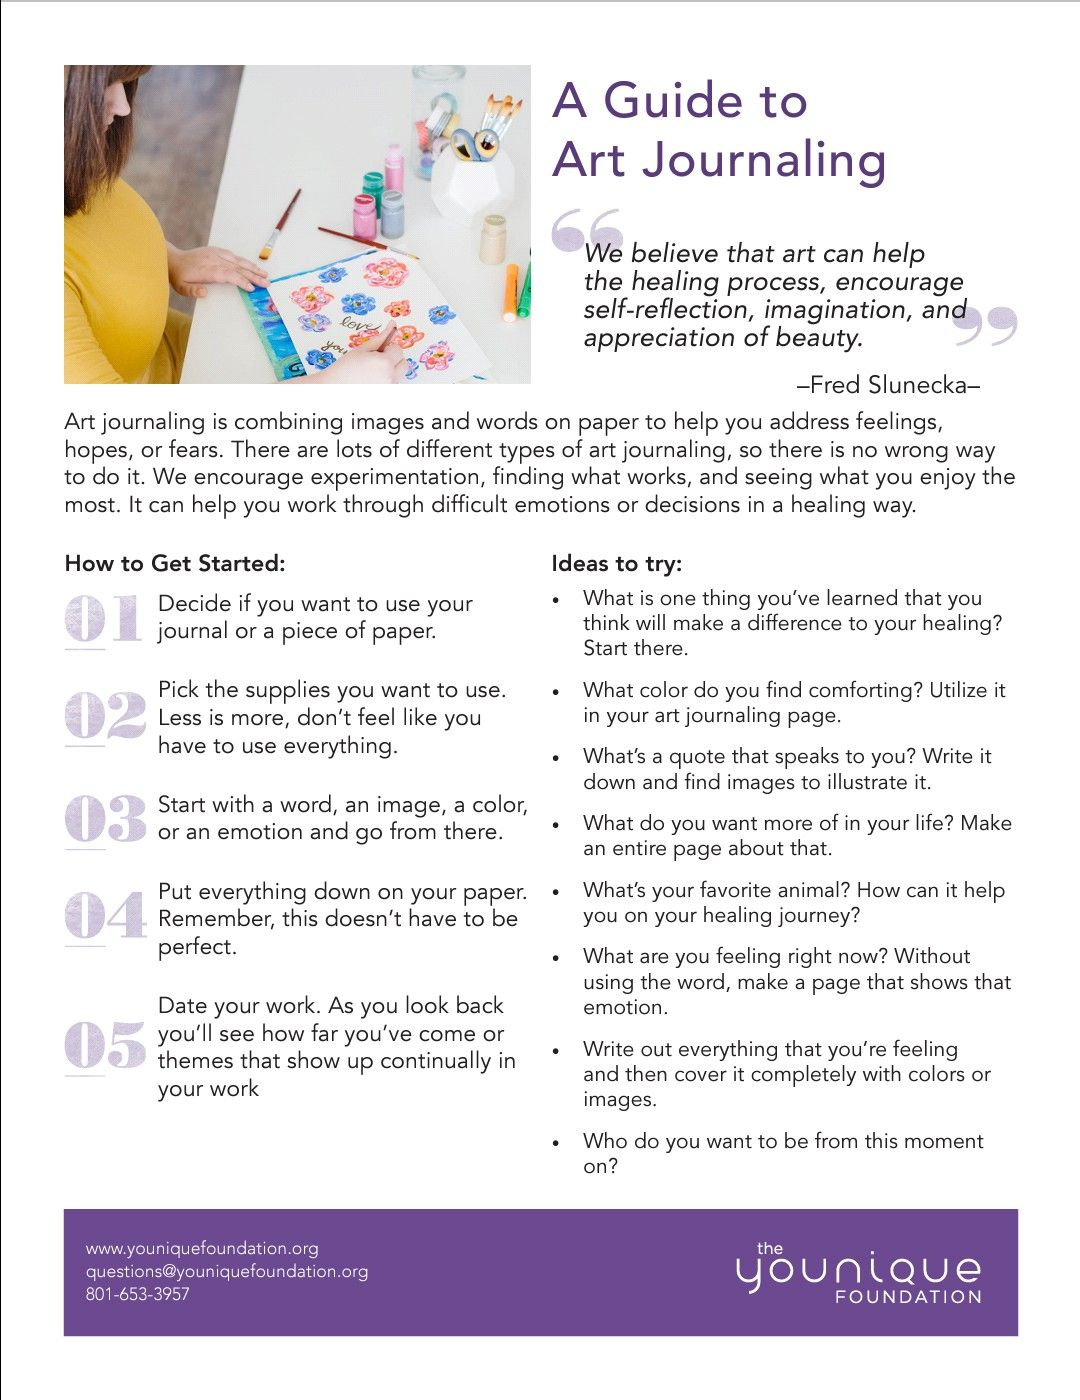 A Guide To Art Journaling